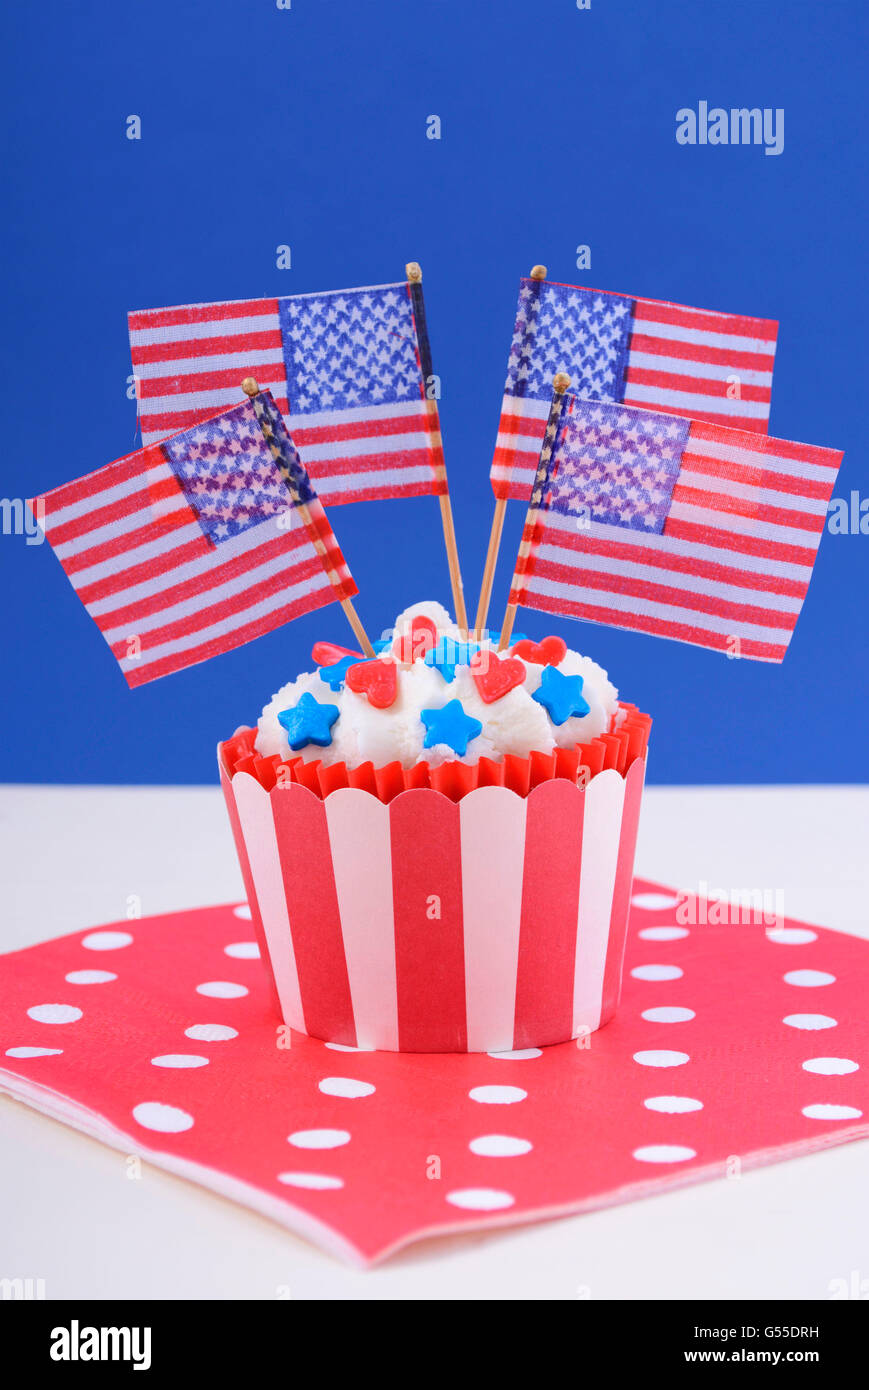 usa theme cupcake with red hearts and blue star candy decorations